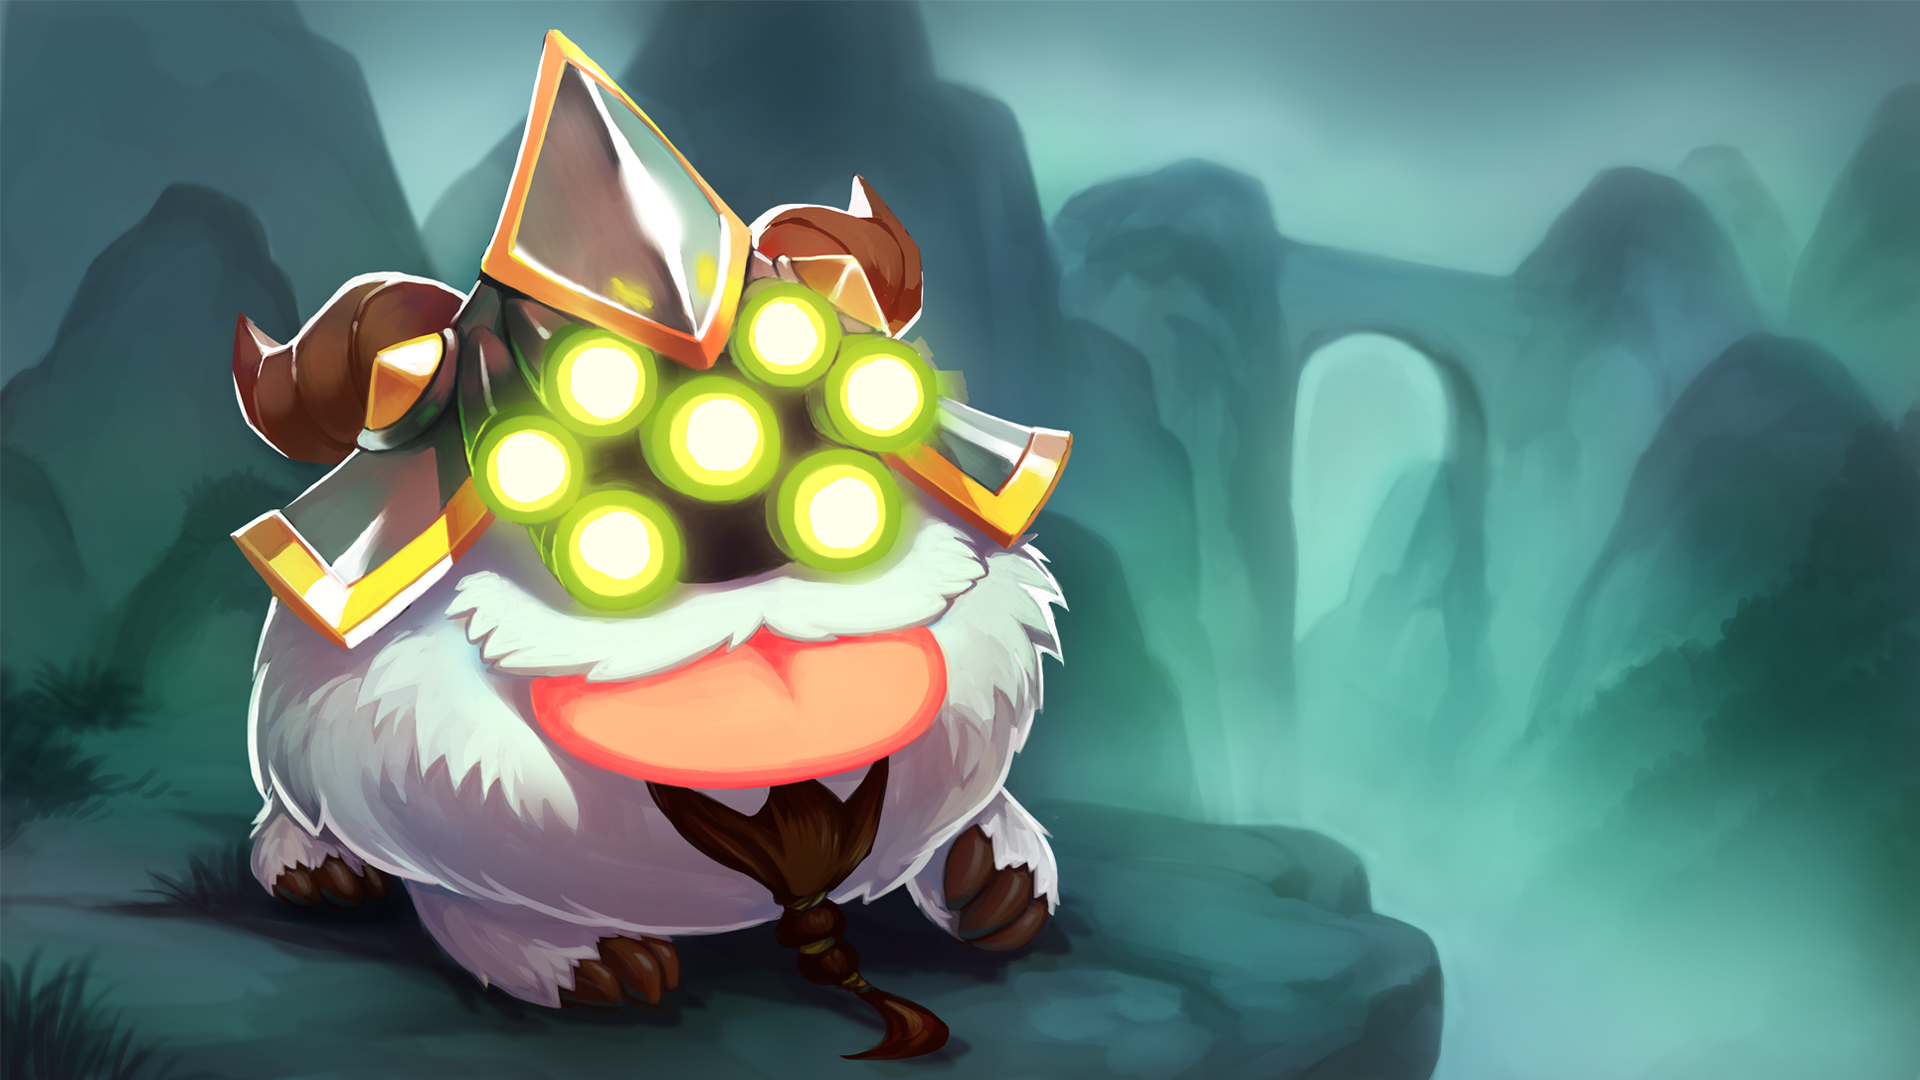 League of Legends Poro Wallpaper - WallpaperSafari